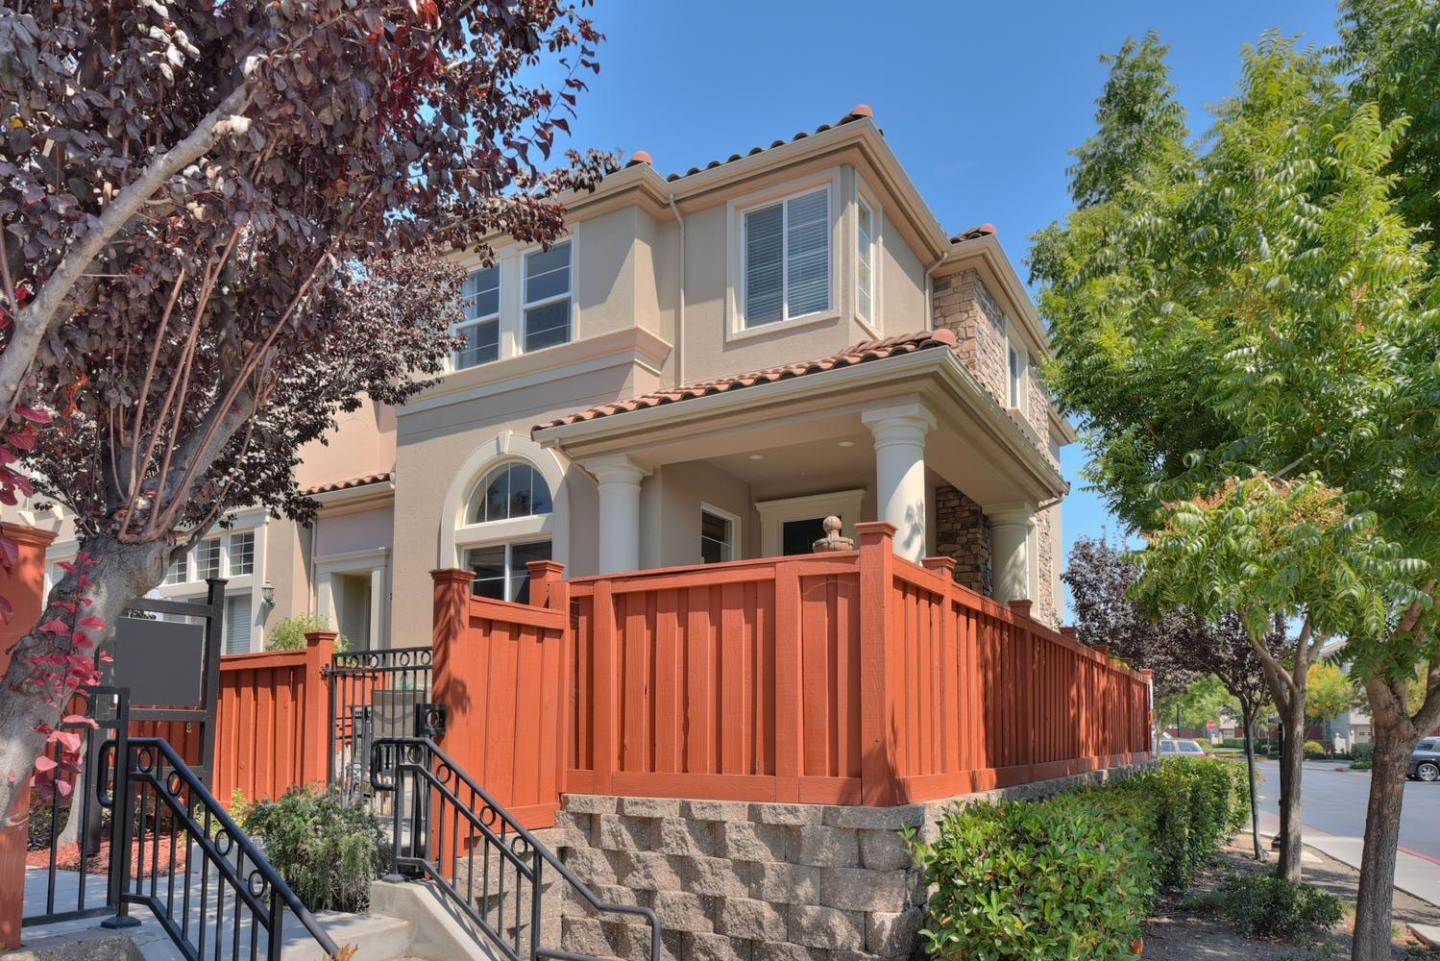 329 Vista Roma Way San Jose, CA 95136 - MLS #: ML81722511